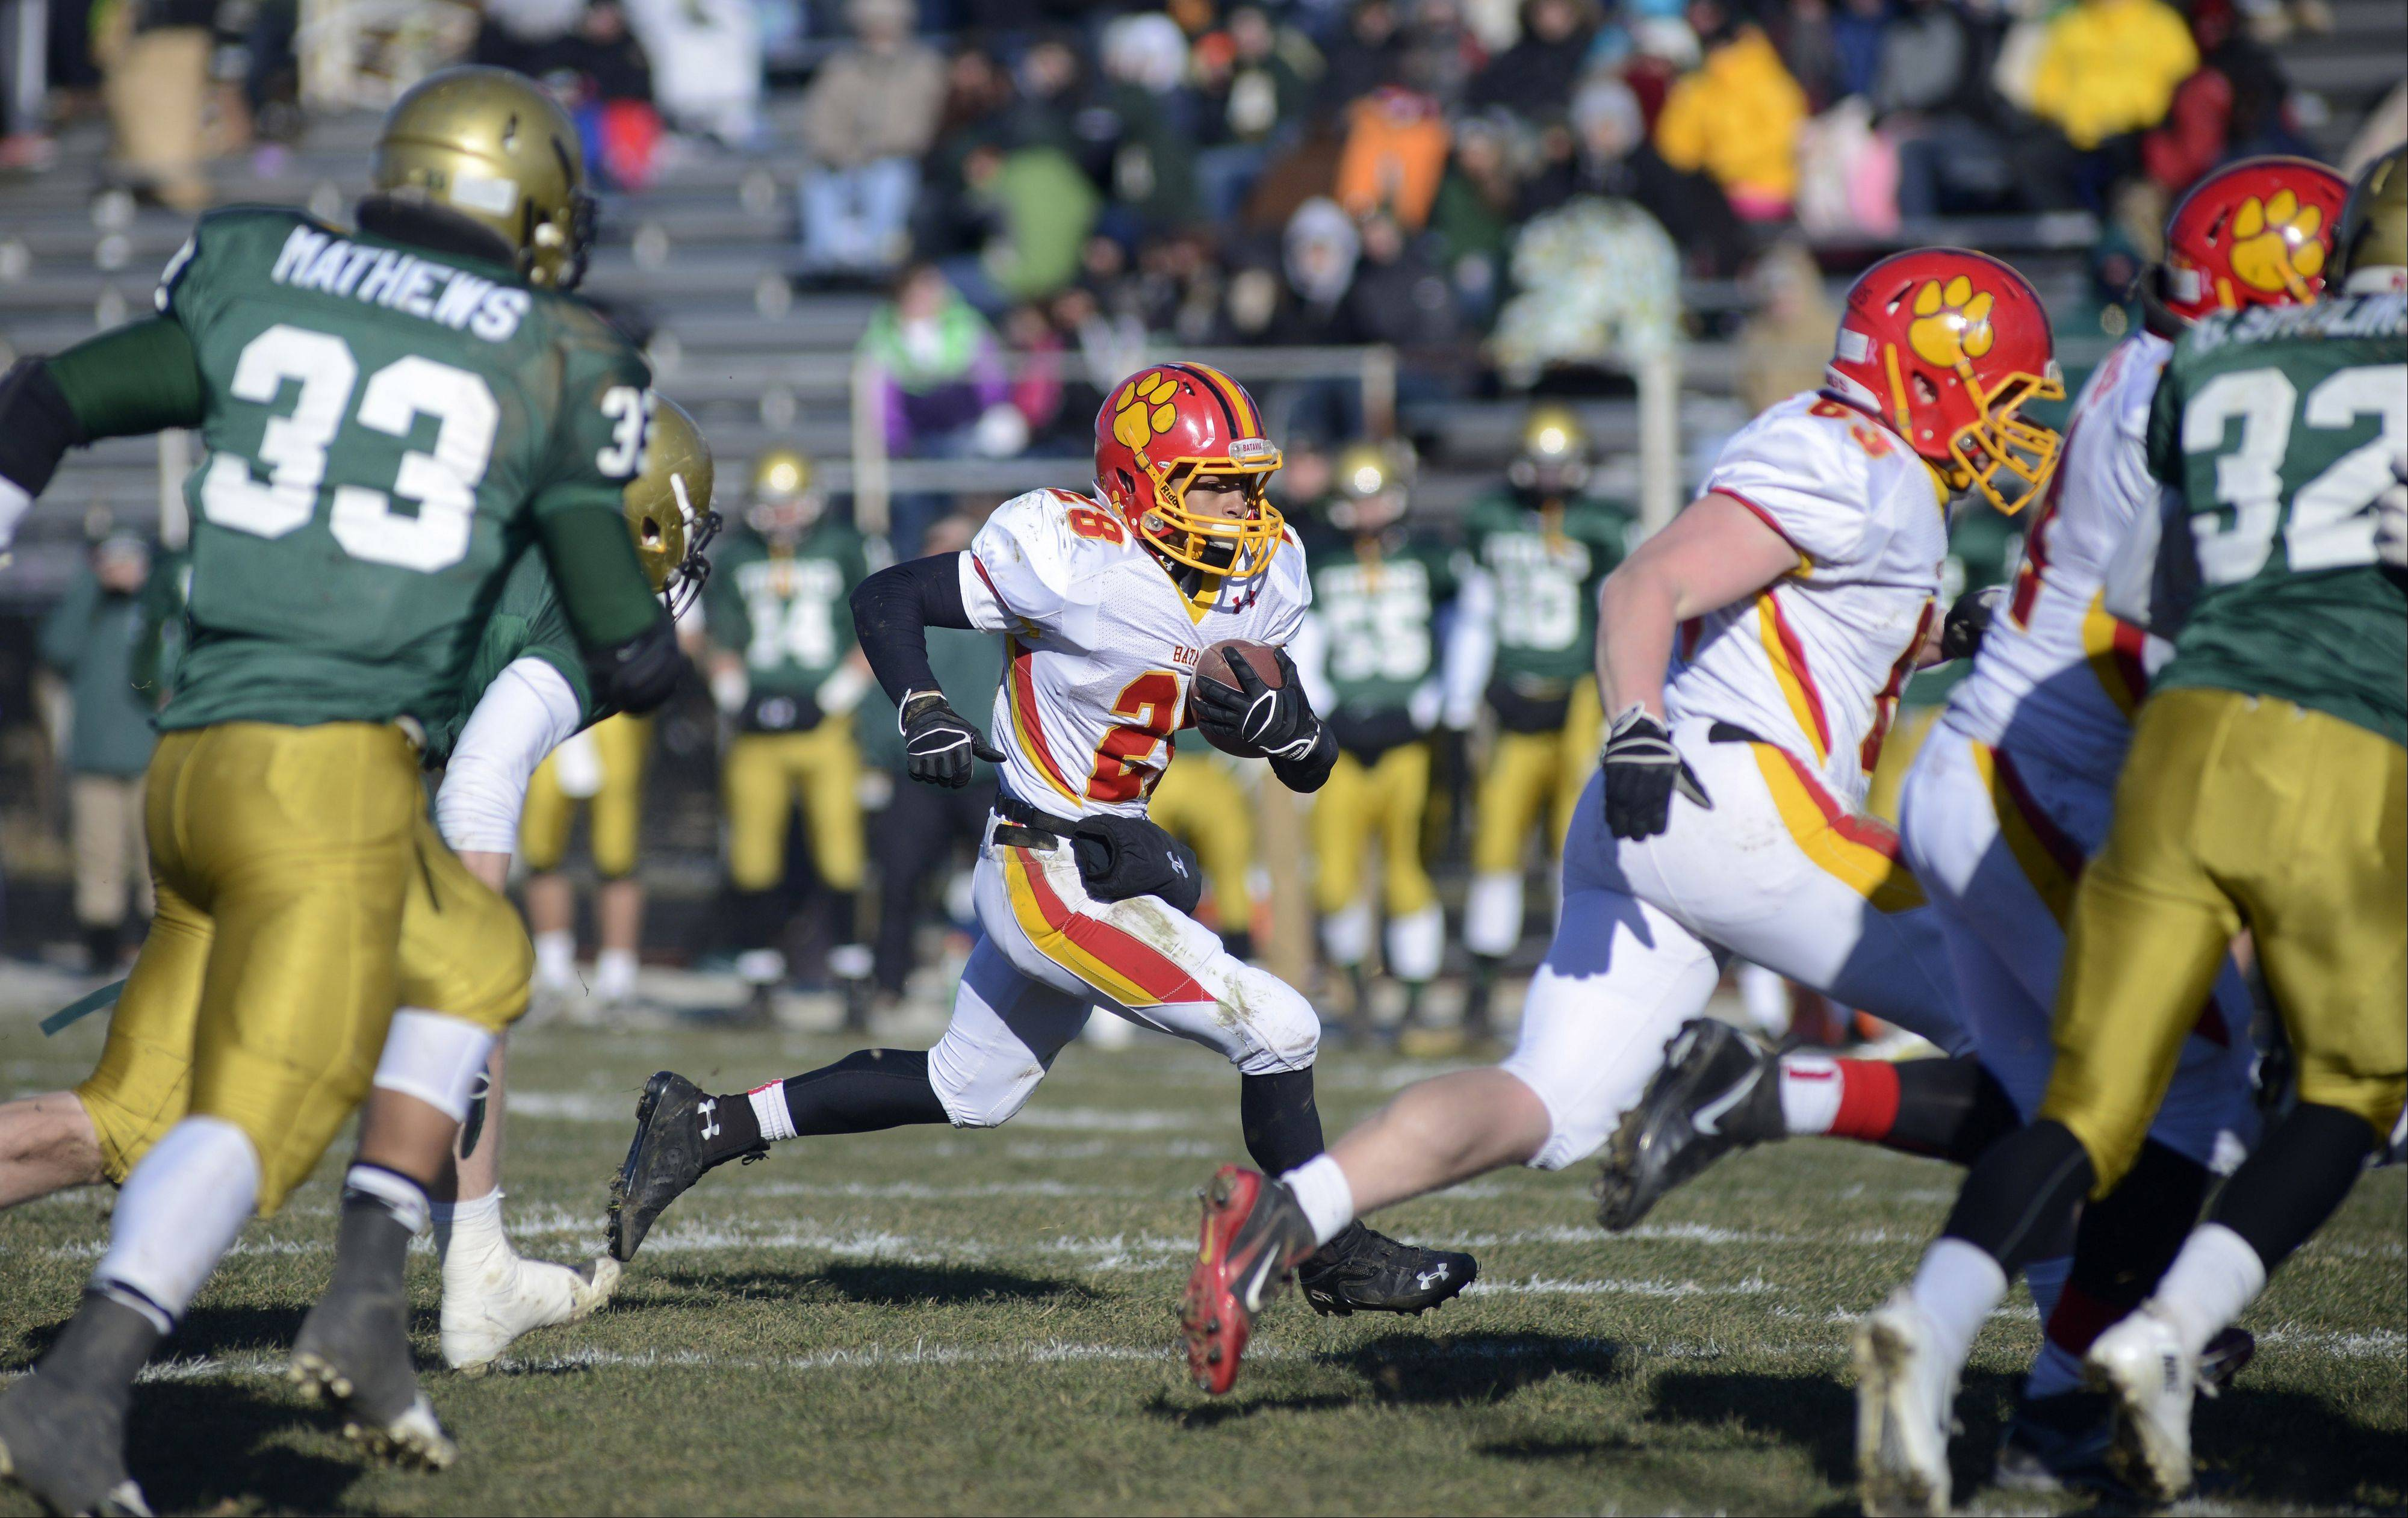 Batavia's Anthony Scaccia sprints down the field in the second quarter of the Class 6A semifinal game on Saturday, November 23.